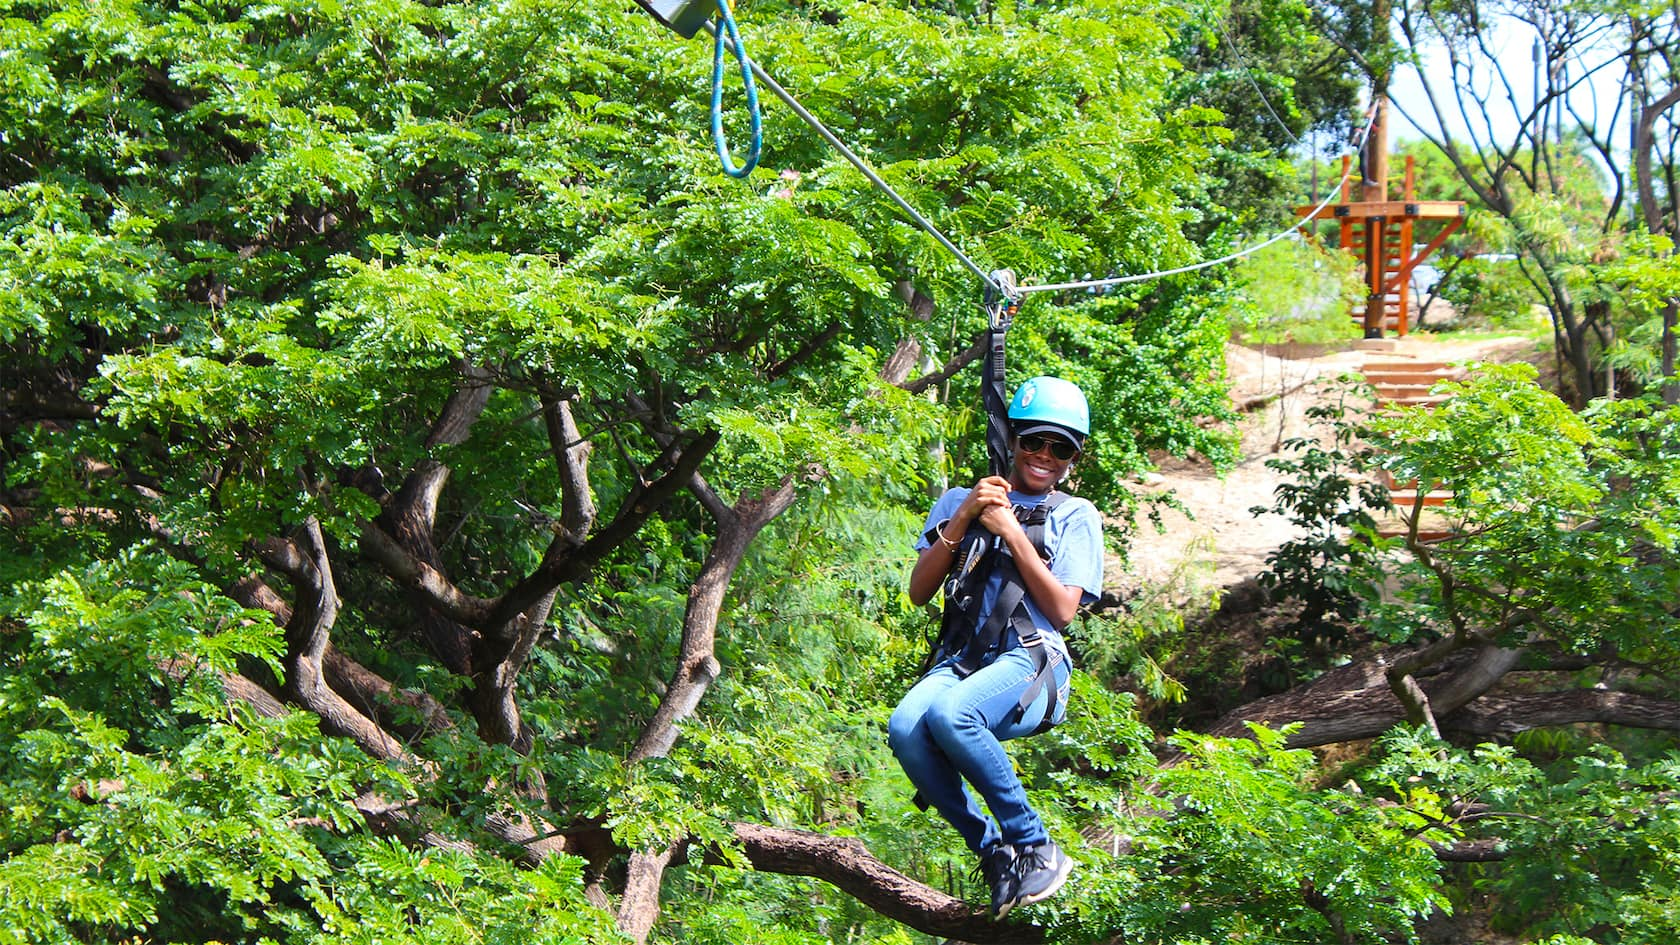 A boy wearing a helmet and harness rides a zipline through trees